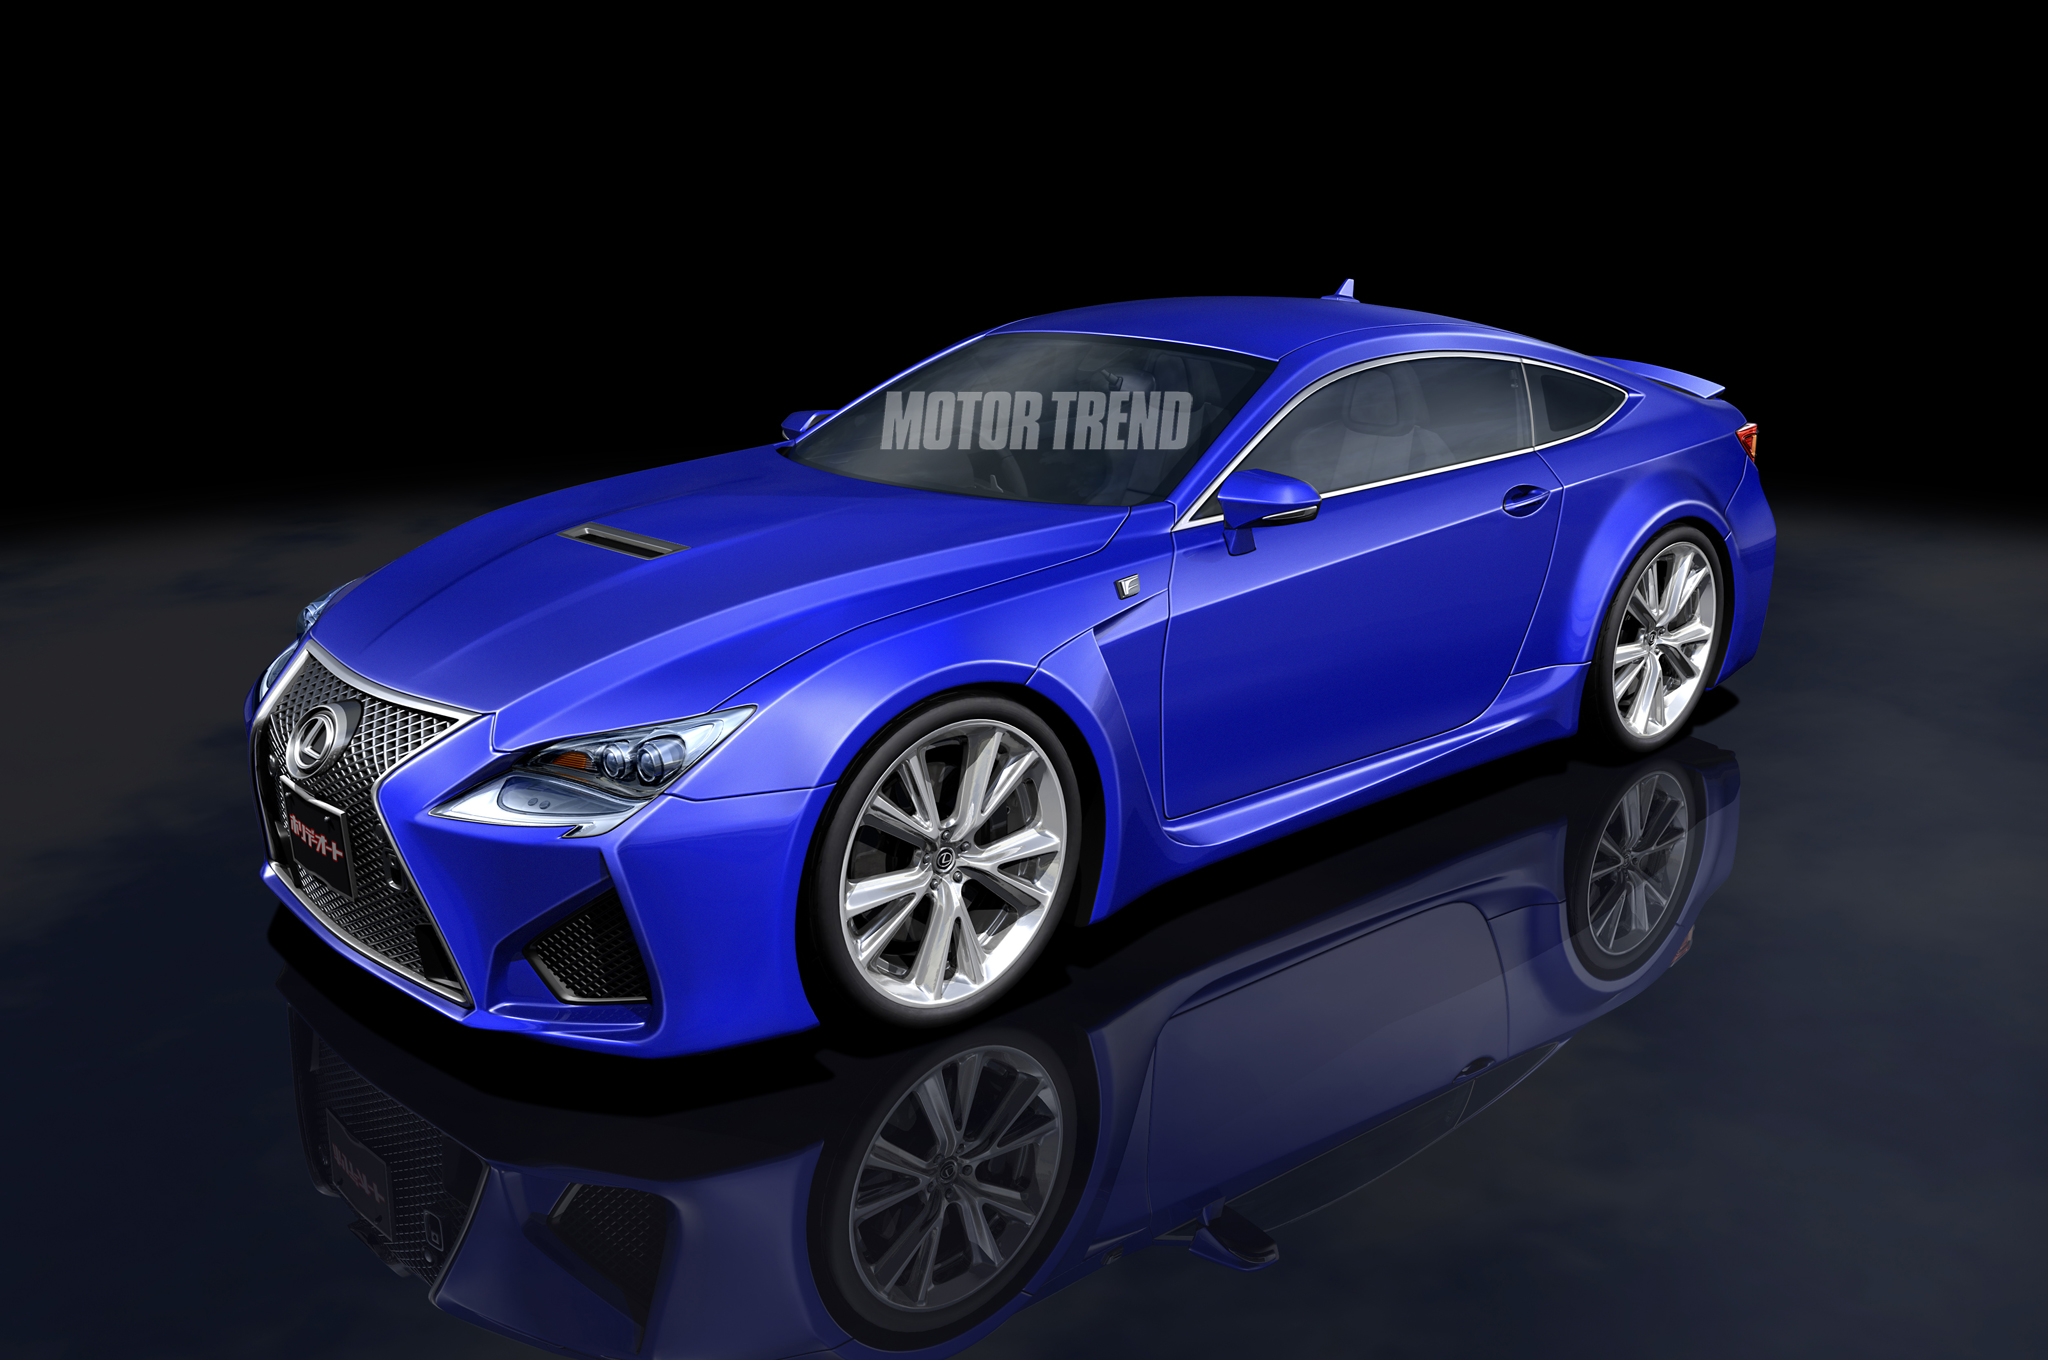 Scoop: The all-new Lexus RC and RC F